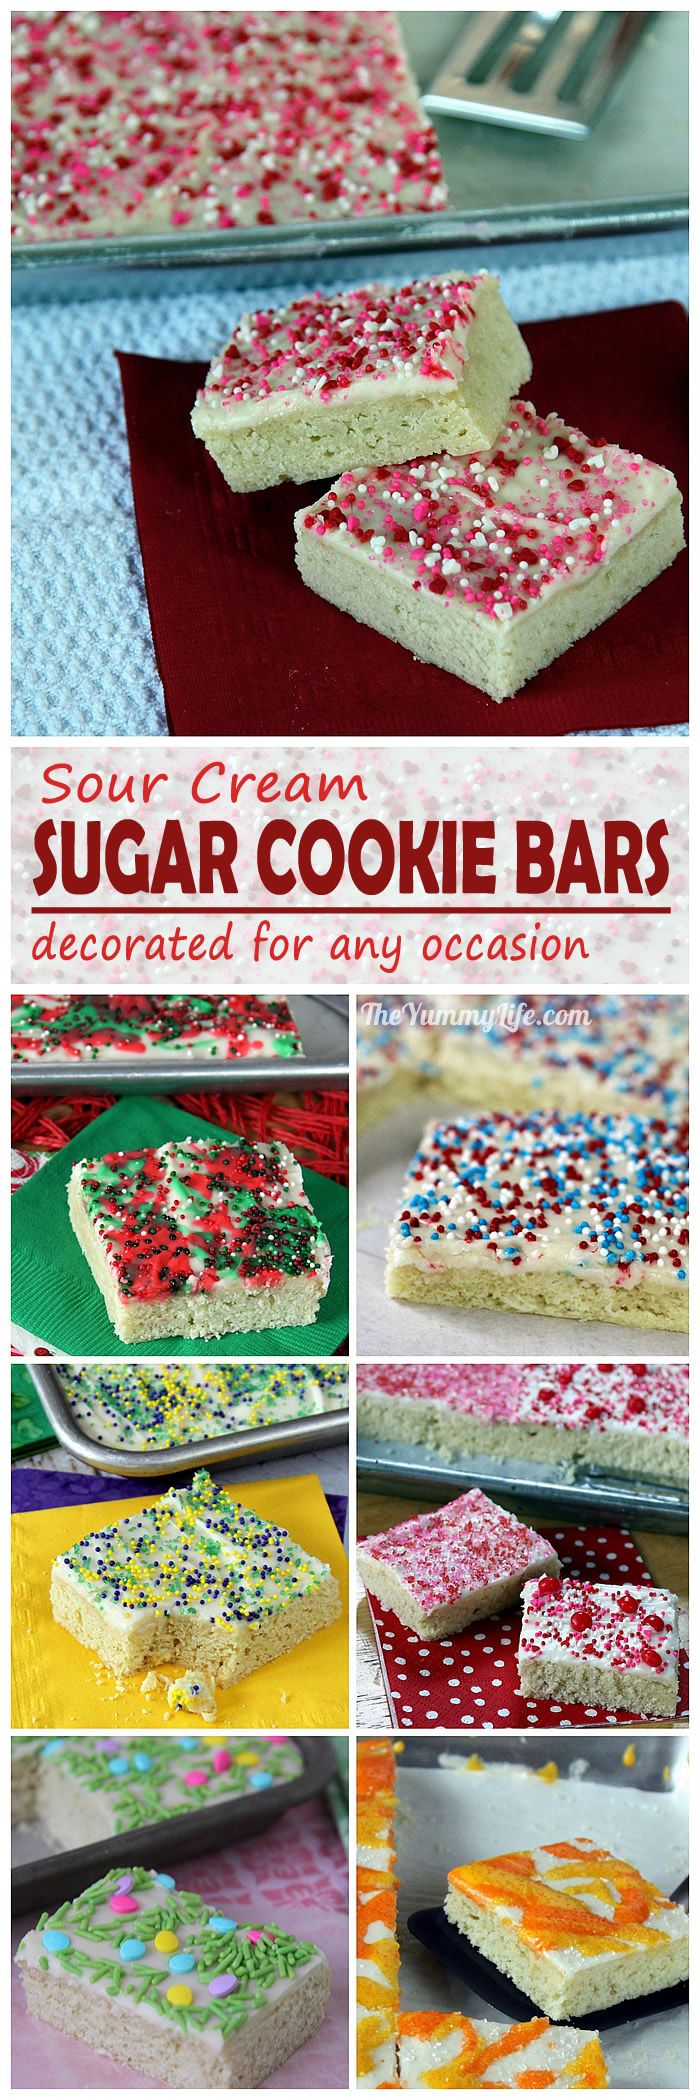 Sour Cream Sugar Cookies Bars are an easy, time saving, short-cut sugar cookie in a yummy bar form. Customize them with different colors of frosting and sprinkles for any holiday, sport or school event, wedding or baby shower. From TheYummyLife.com